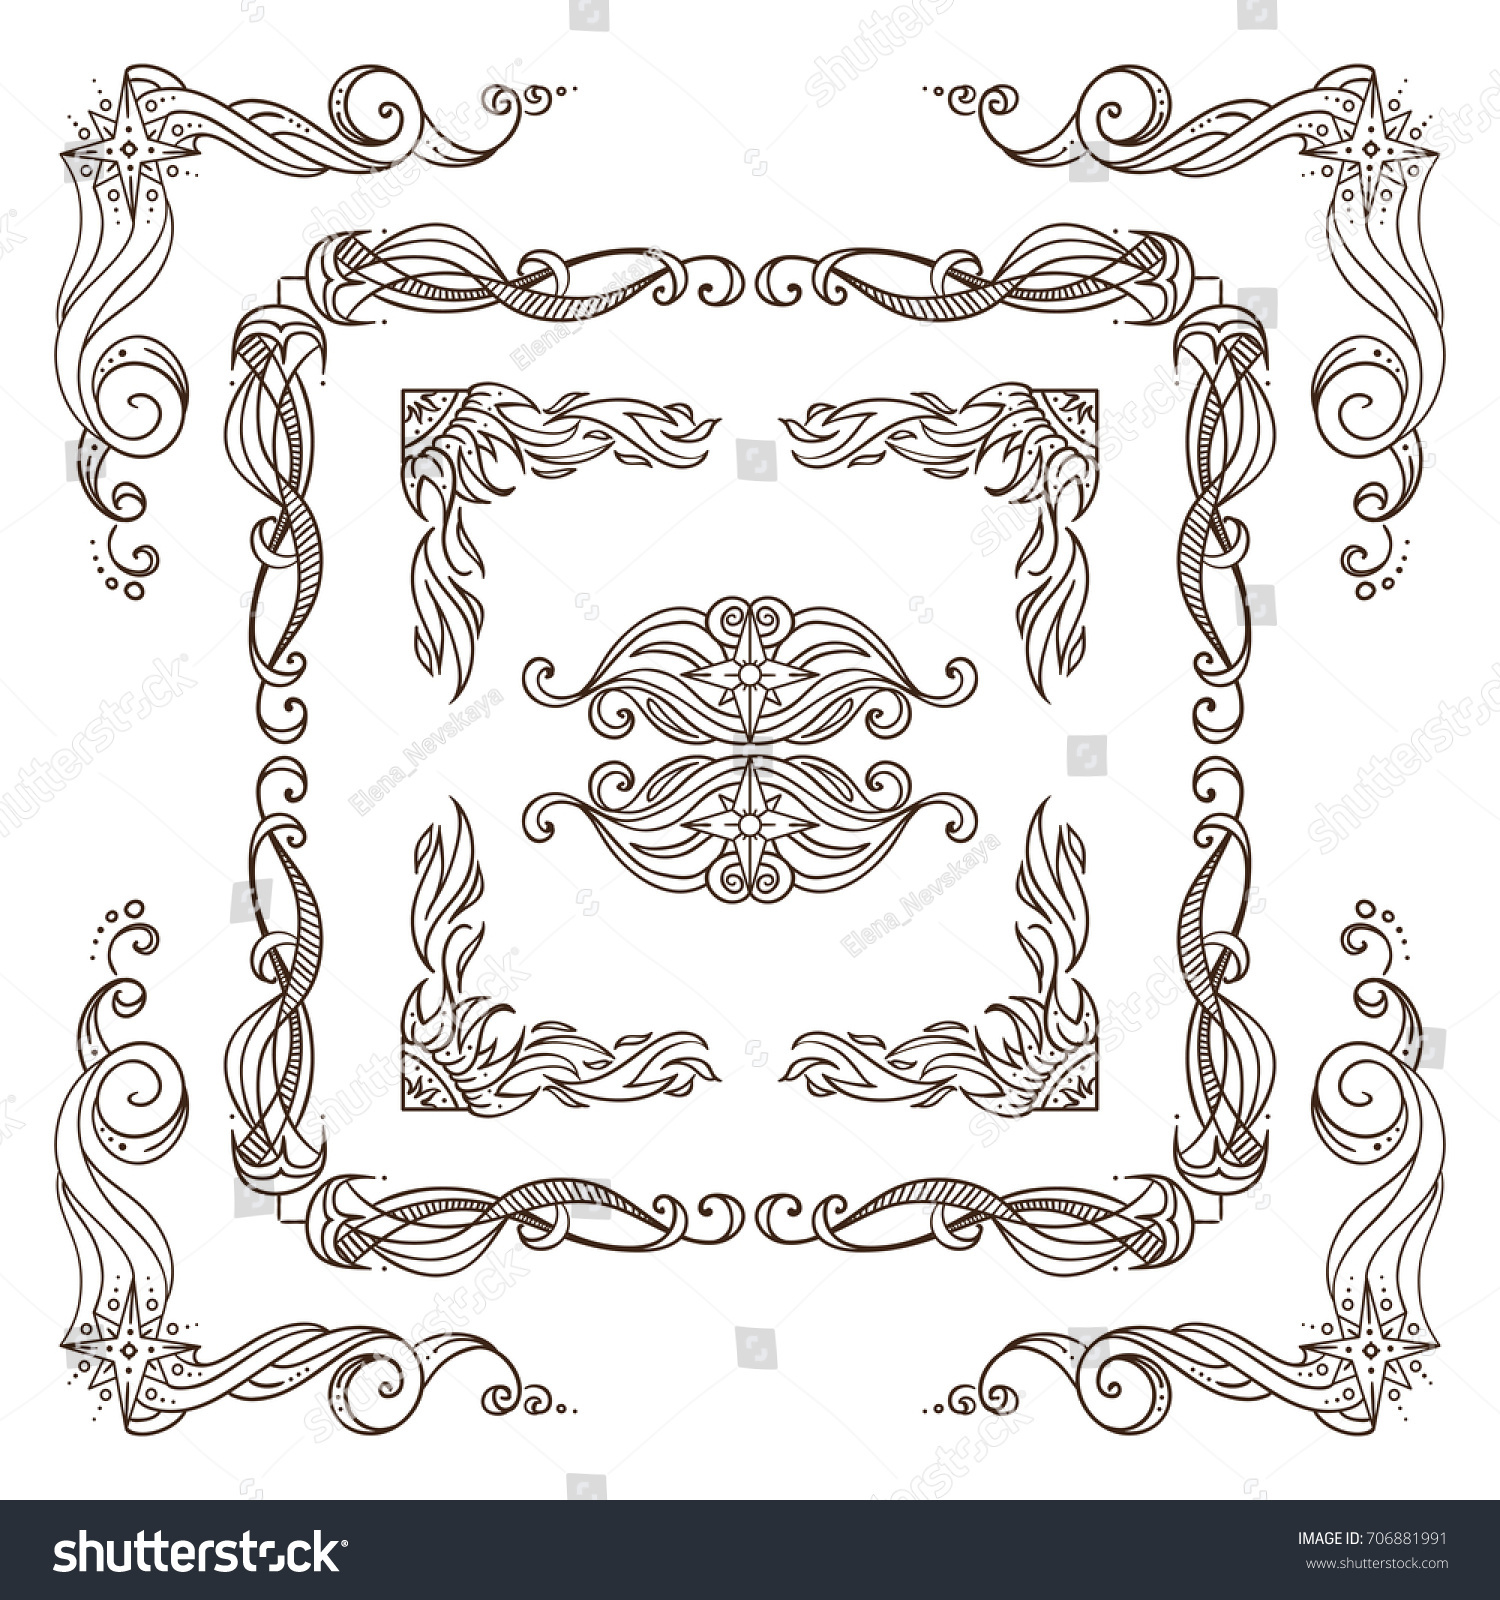 Set Square Frames Corners Dividers Ornate Stock Vector (Royalty Free ...